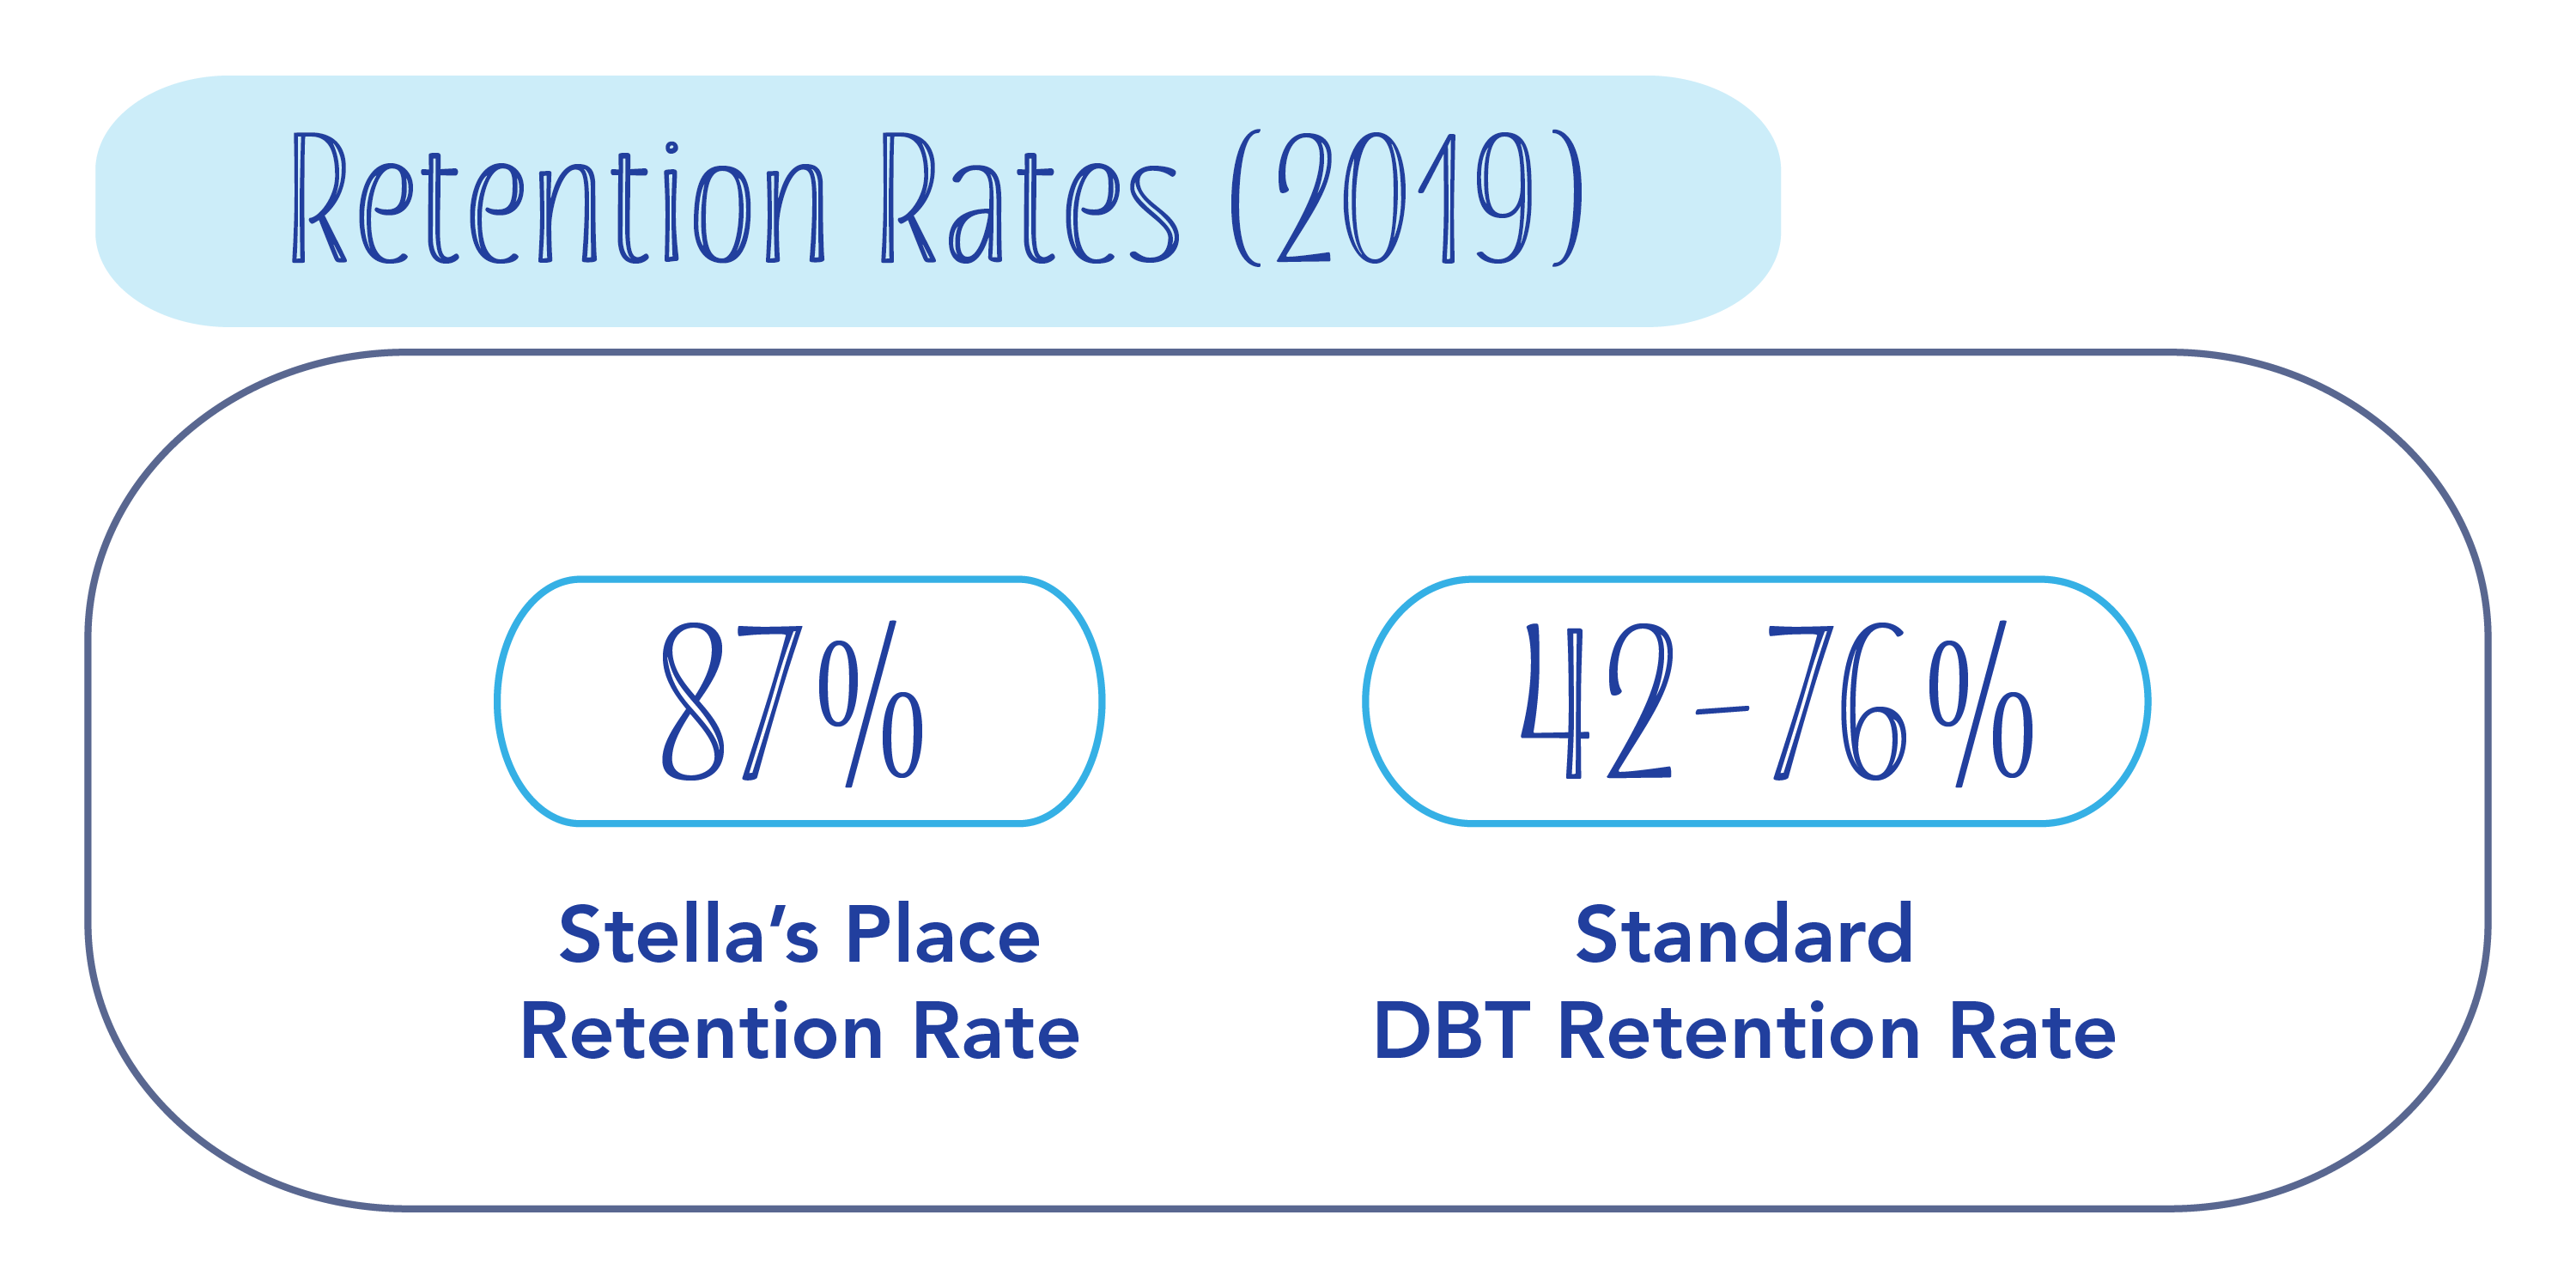 """A graphic with header """"Retention Rates (2019)"""" in rounded blue box. Underneath, two statistics read """"87% Stella's Place Retention Rate"""" on the left and """"42 to 76% Standard DBT Retention Rate"""" on the right. Both have a rounded corner blue line border around."""